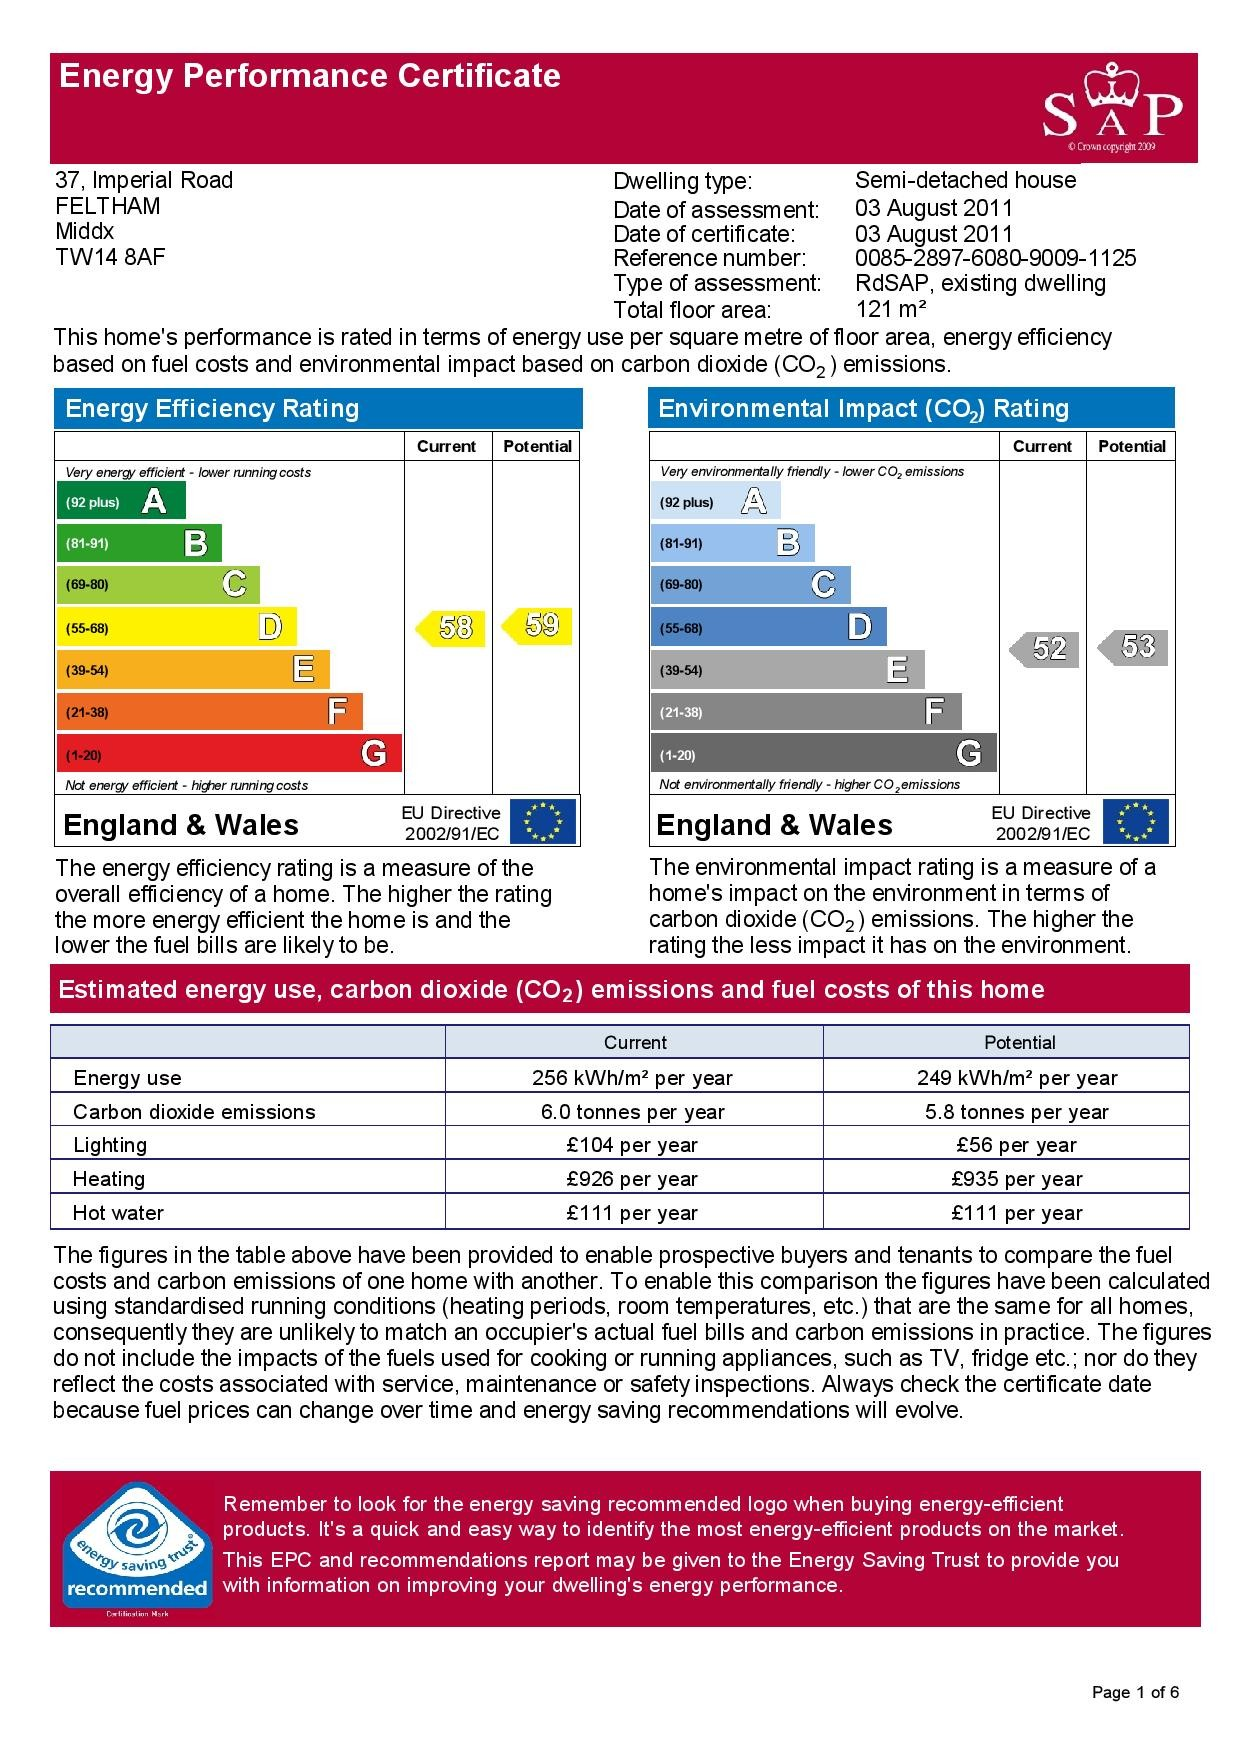 EPC Graph for 37 Imperial Road, Feltham, Middlesex TW14 8AF